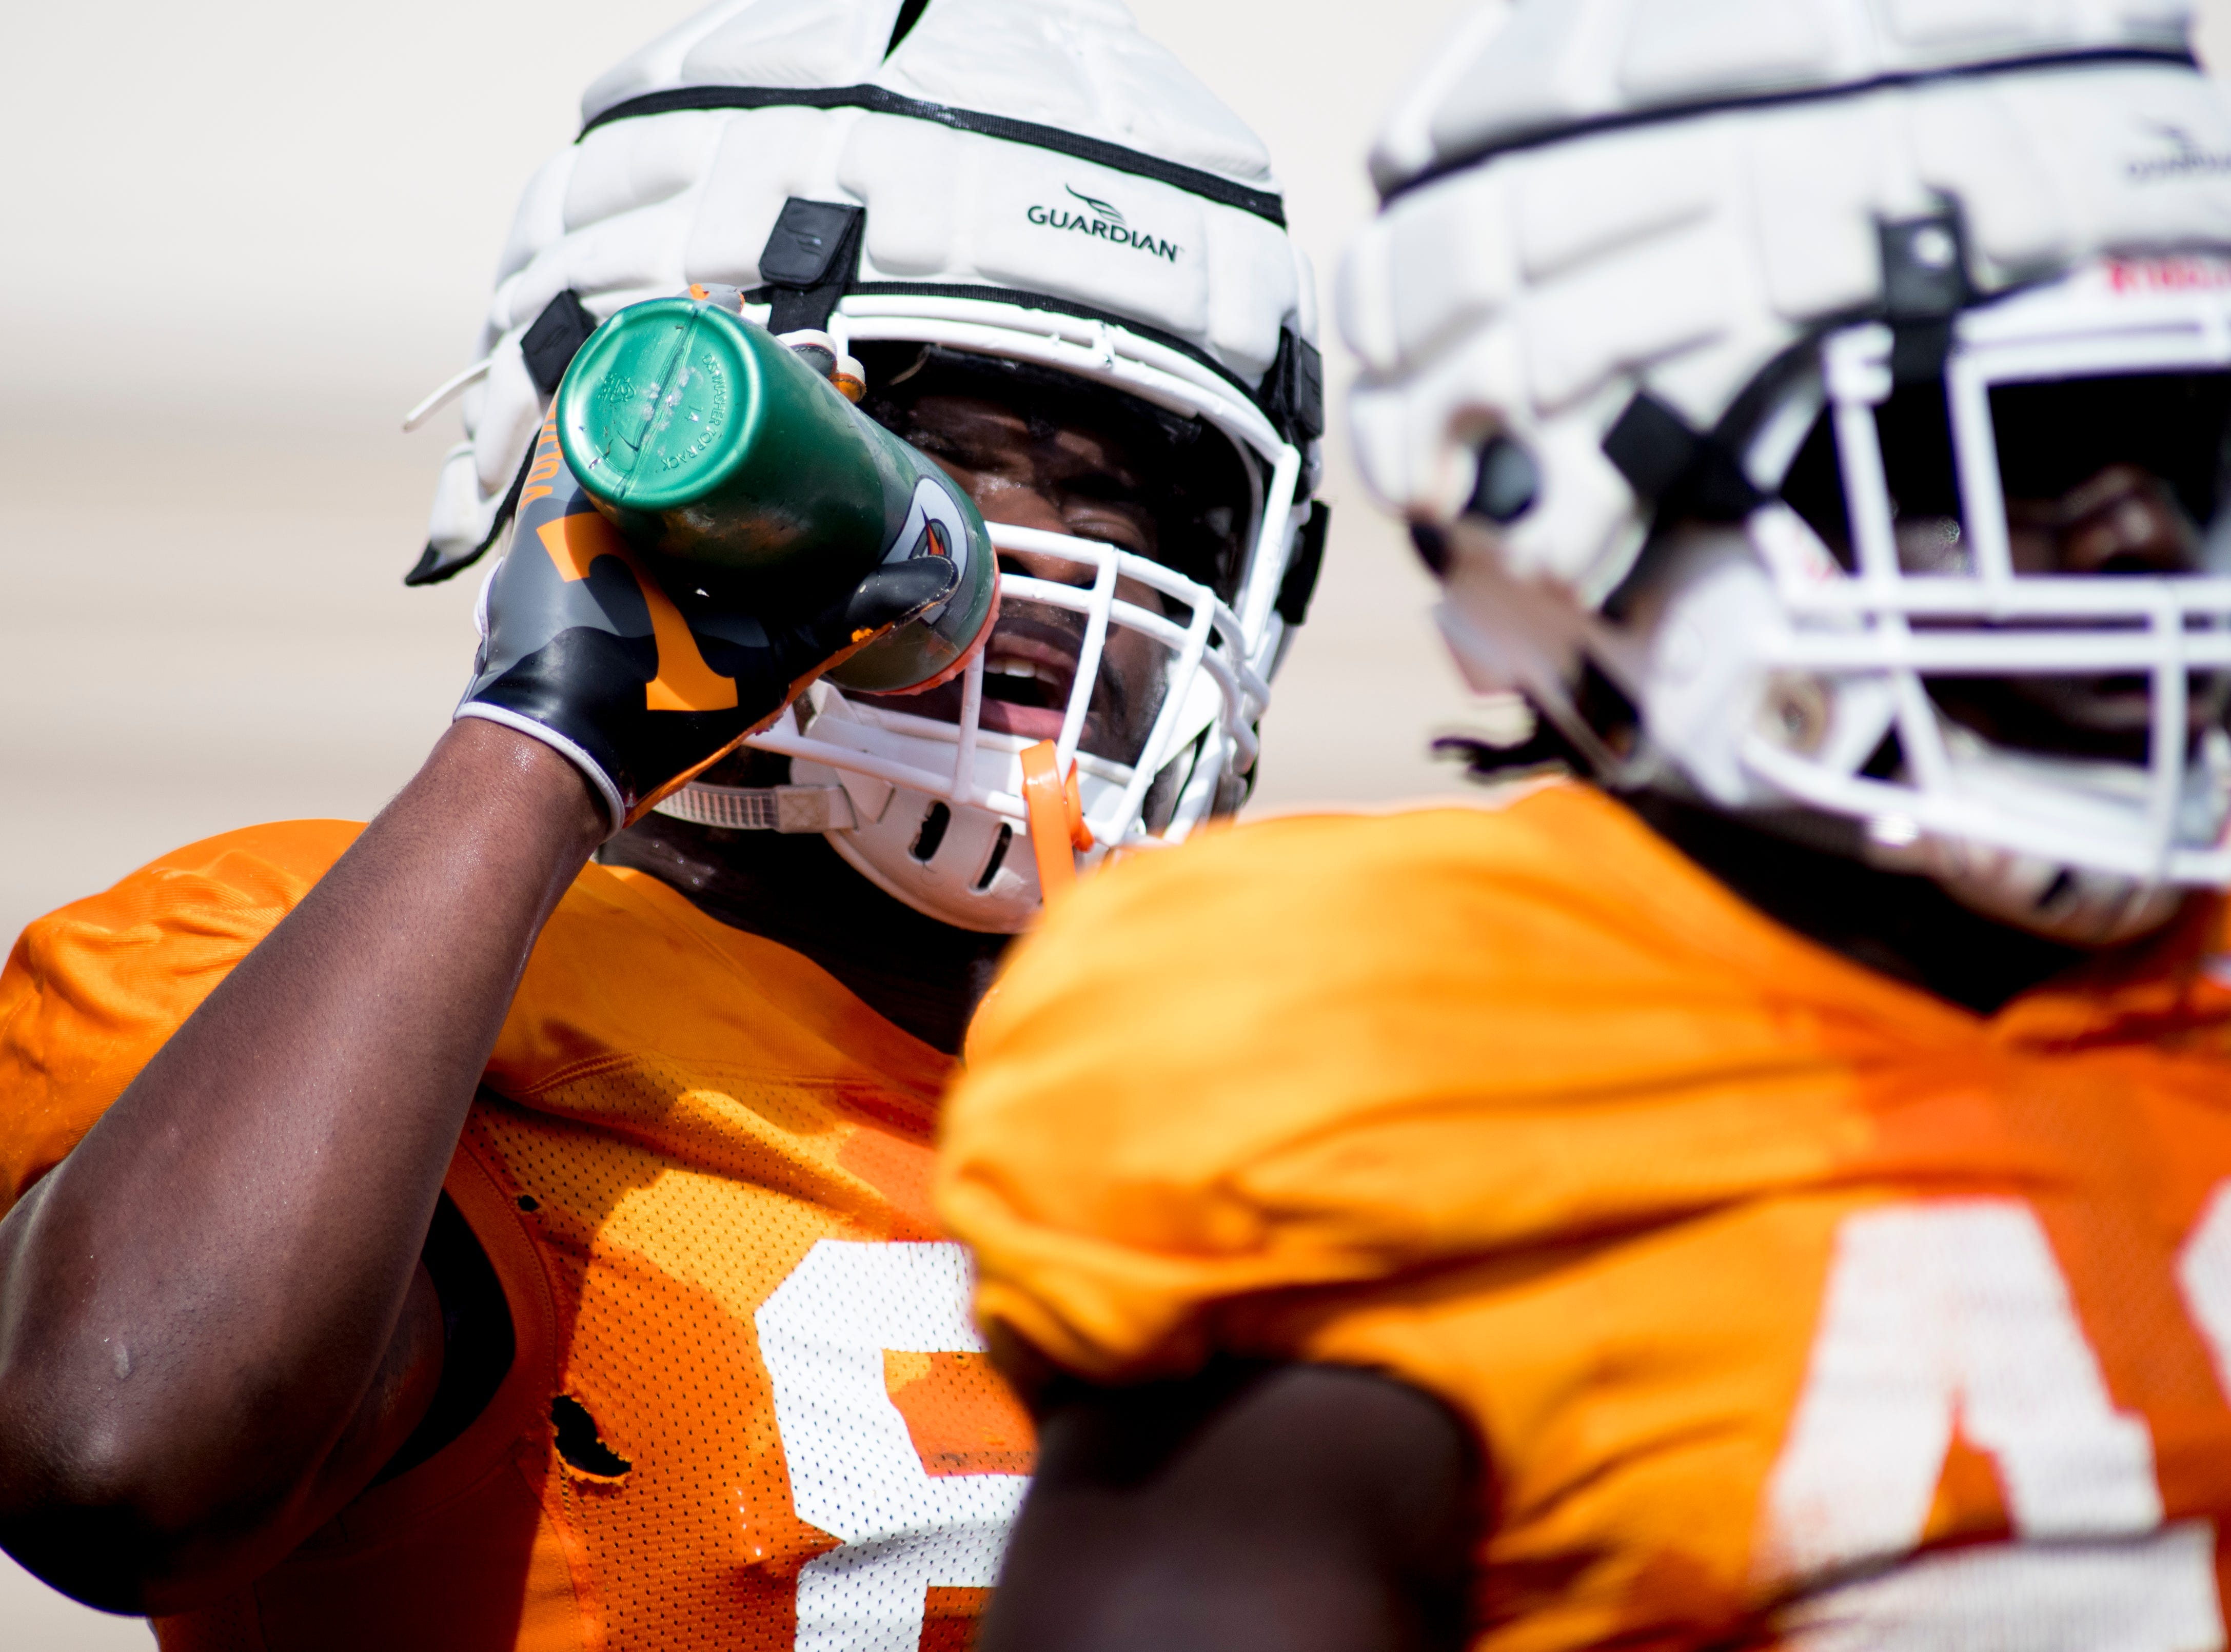 Tennessee's LaTrell Bumphus (88) takes a drink during Tennessee spring practice at Haslam Field in Knoxville, Tennessee on Thursday, April 11, 2019.